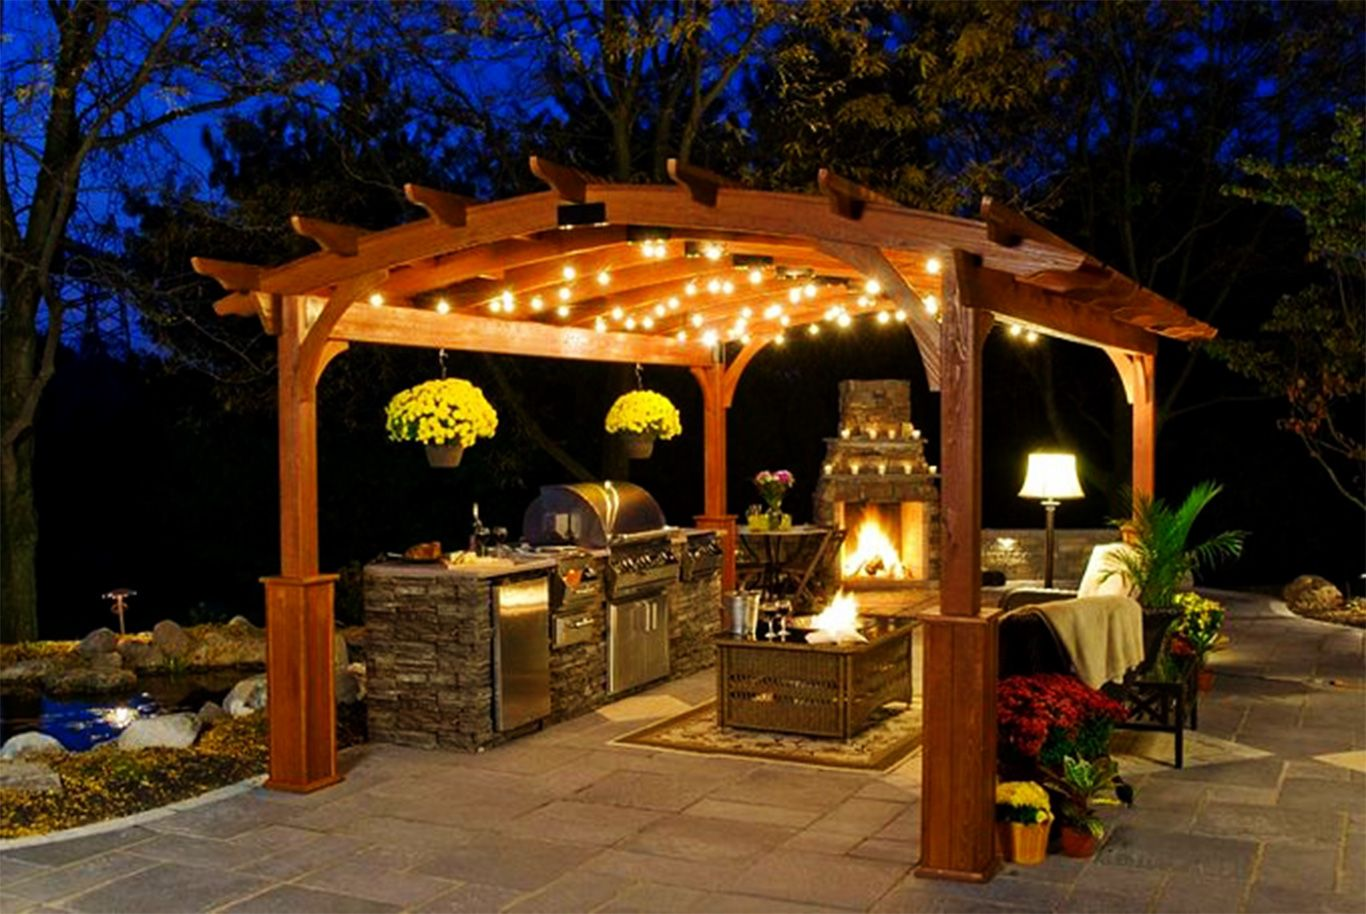 Outdoor Kitchen Pictures Design Ideas 194 best images about patio covers bbq islands on pinterest arbors outdoor living and covered patios Kitchen Fireplace Design Ideas Inspire Amazing Diy Outdoor Kitchen Design Ideas With Elegant Kitchen Lighting And